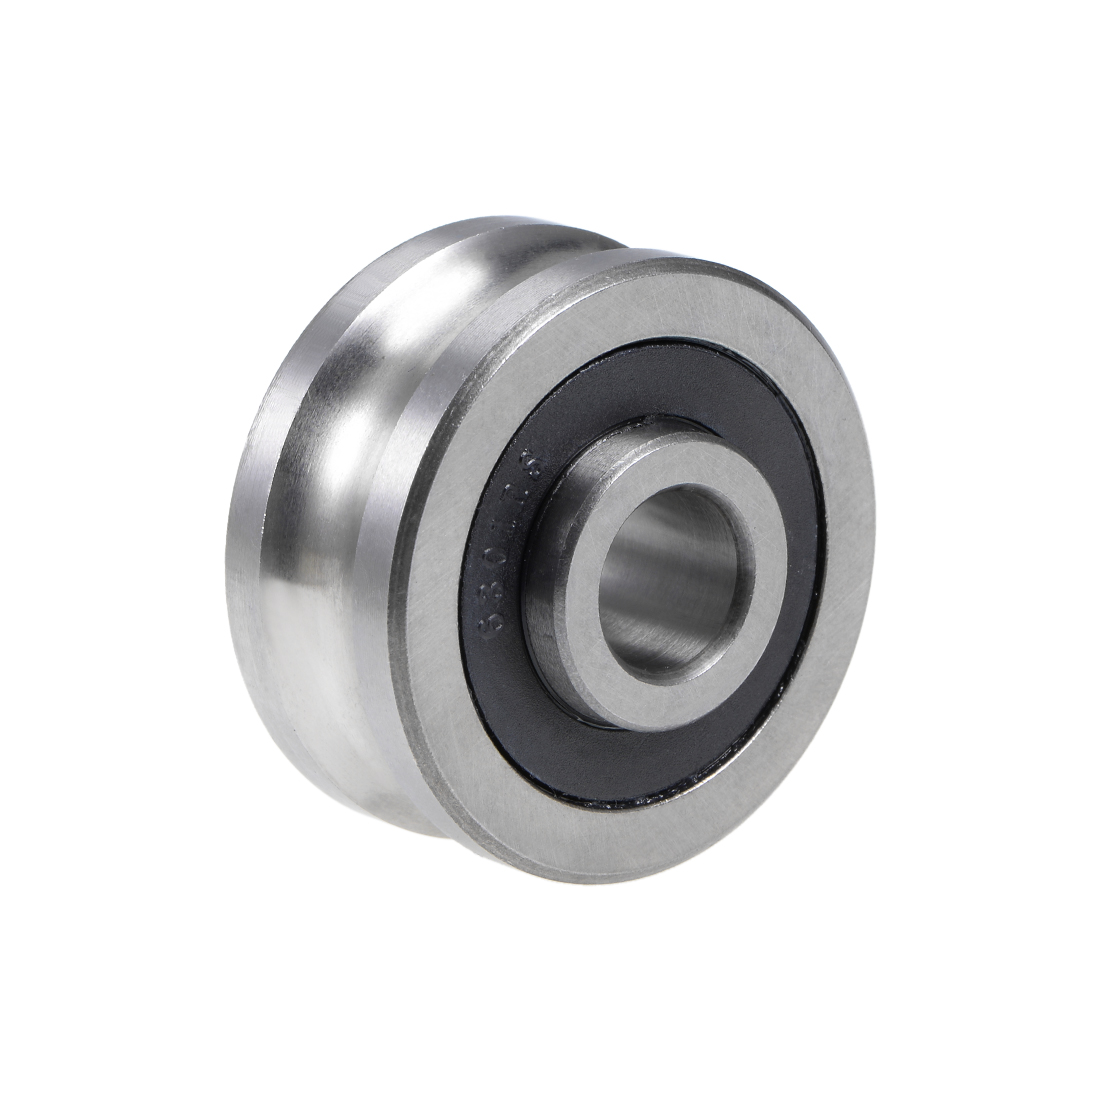 SG35 U-Groove Track Guide Bearing 12x42x19mm Pulley Bearings for Textile Machine